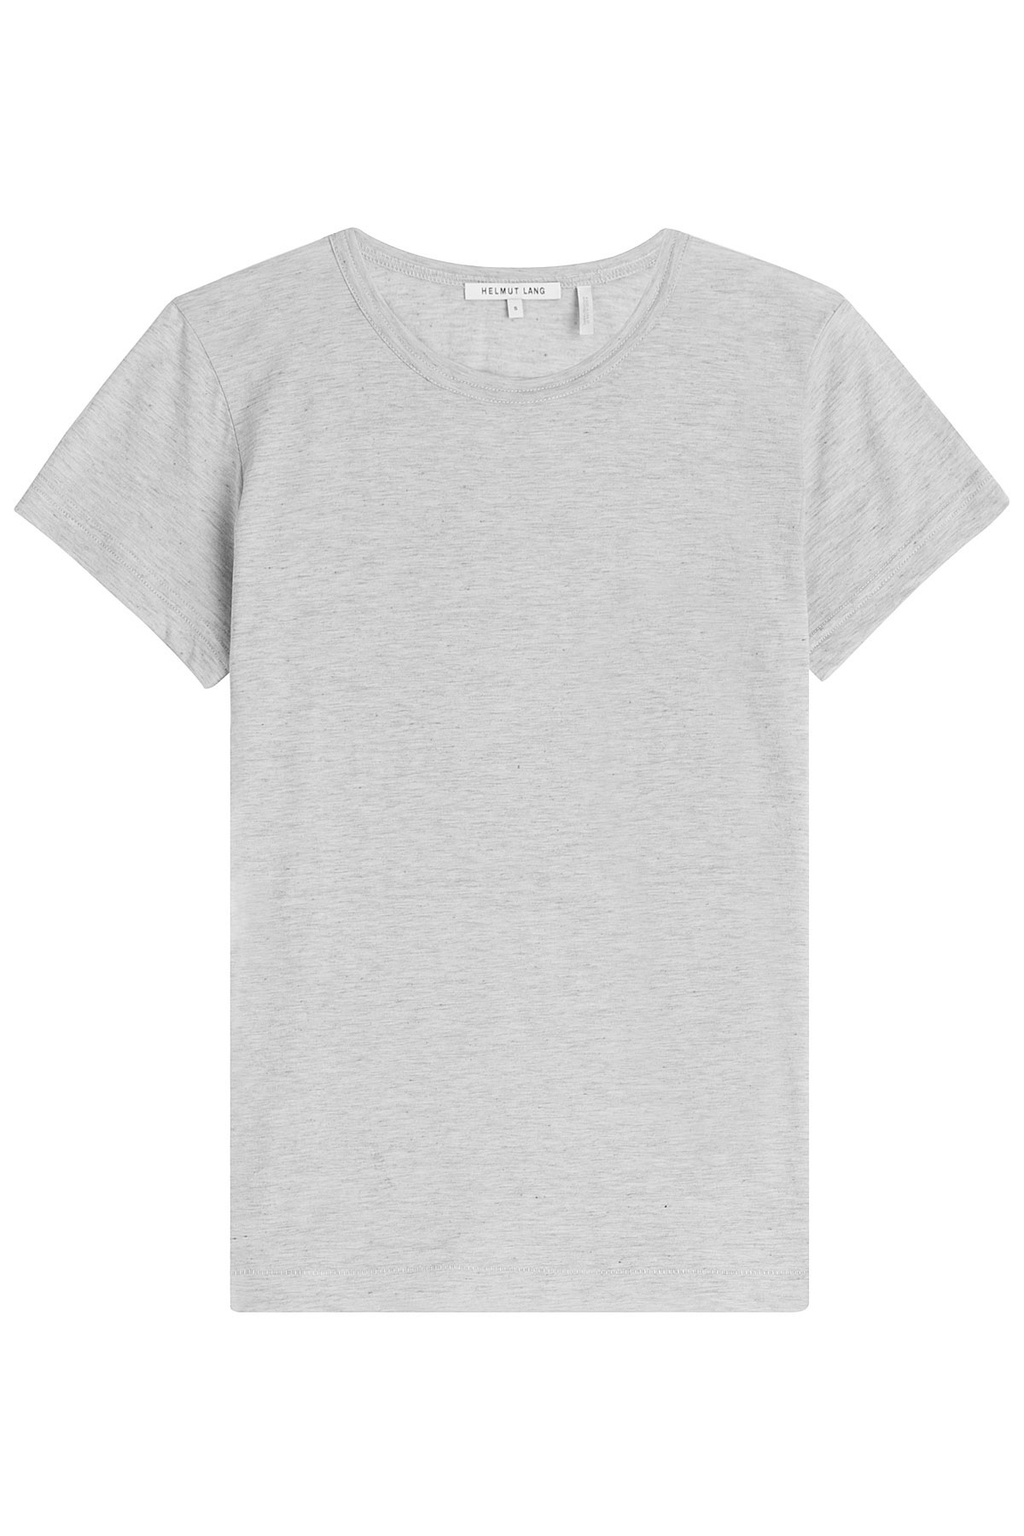 Cotton Cashmere T Shirt Grey - neckline: round neck; pattern: plain; style: t-shirt; predominant colour: light grey; occasions: casual; length: standard; fibres: cotton - mix; fit: straight cut; sleeve length: short sleeve; sleeve style: standard; pattern type: fabric; texture group: jersey - stretchy/drapey; season: s/s 2016; wardrobe: basic